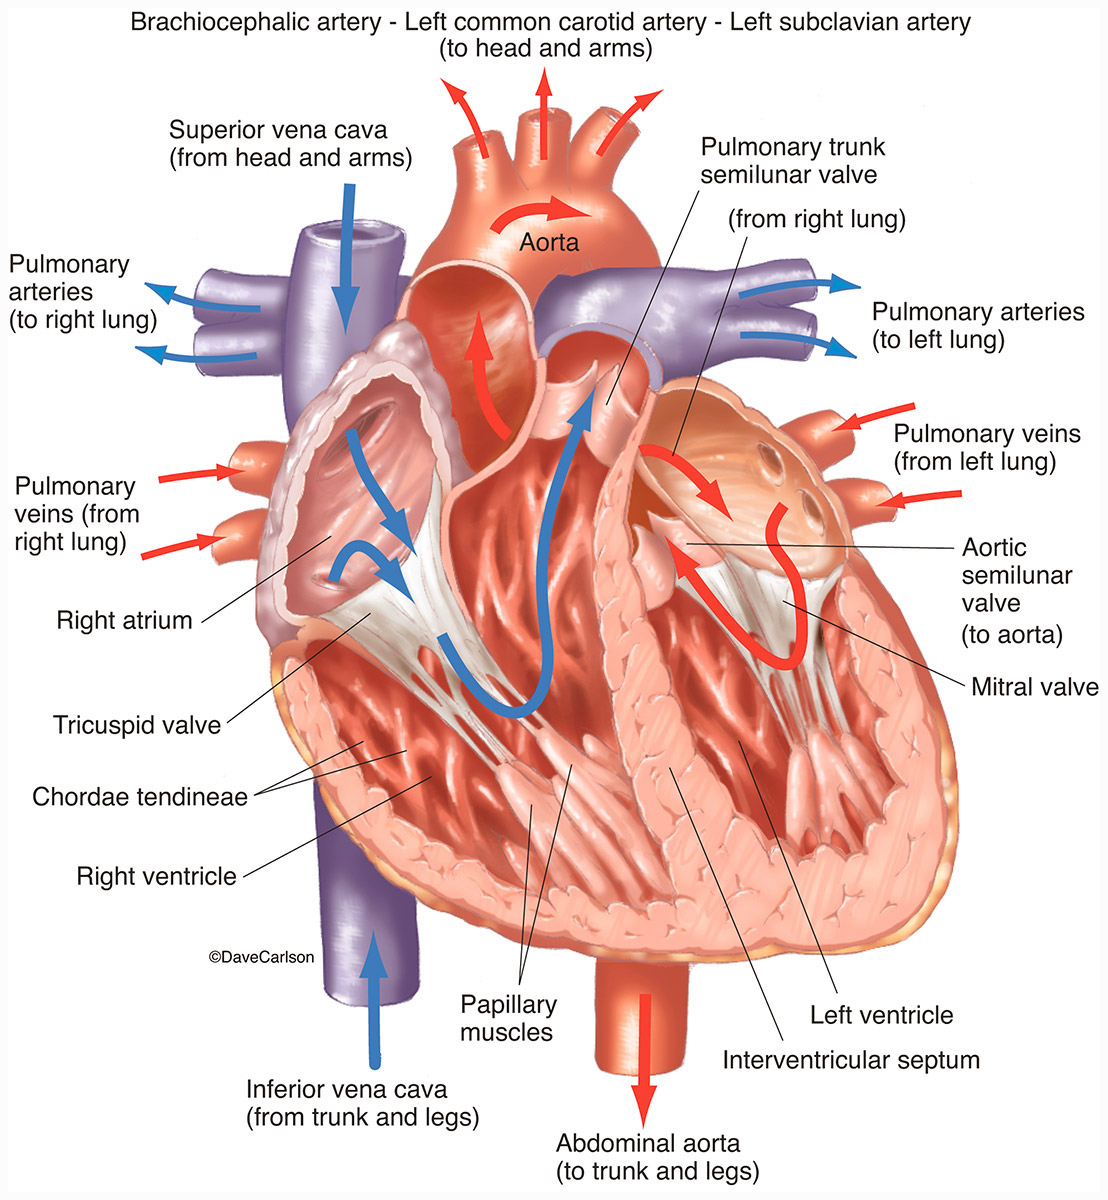 human, heart, interior, coronal section, arterial, venous, blood flow, front view, illustration, photo